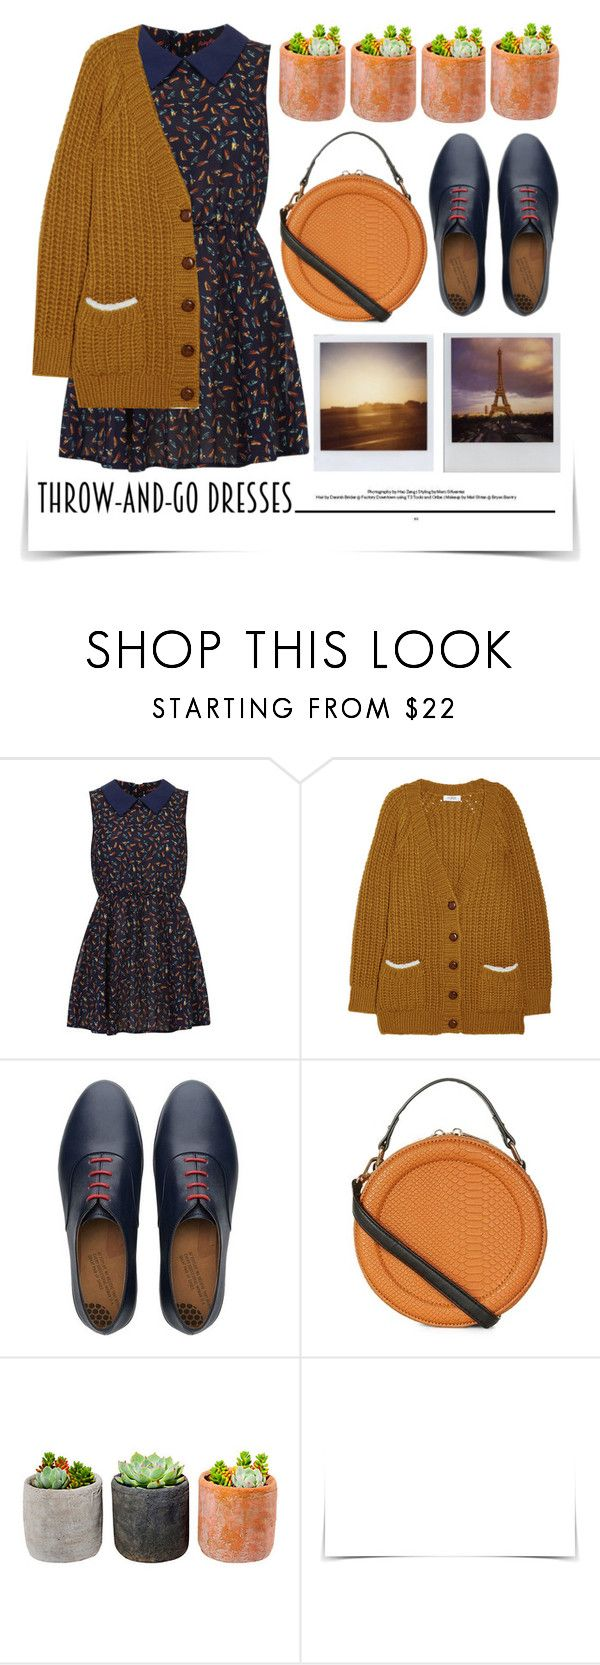 """Easy Outfitting: Throw-and -Go Dresses"" by emcf3548 ❤ liked on Polyvore featuring Dorothy Perkins, Sonia by Sonia Rykiel, FitFlop, New Look, Shop Succulents, Timex and easydresses"